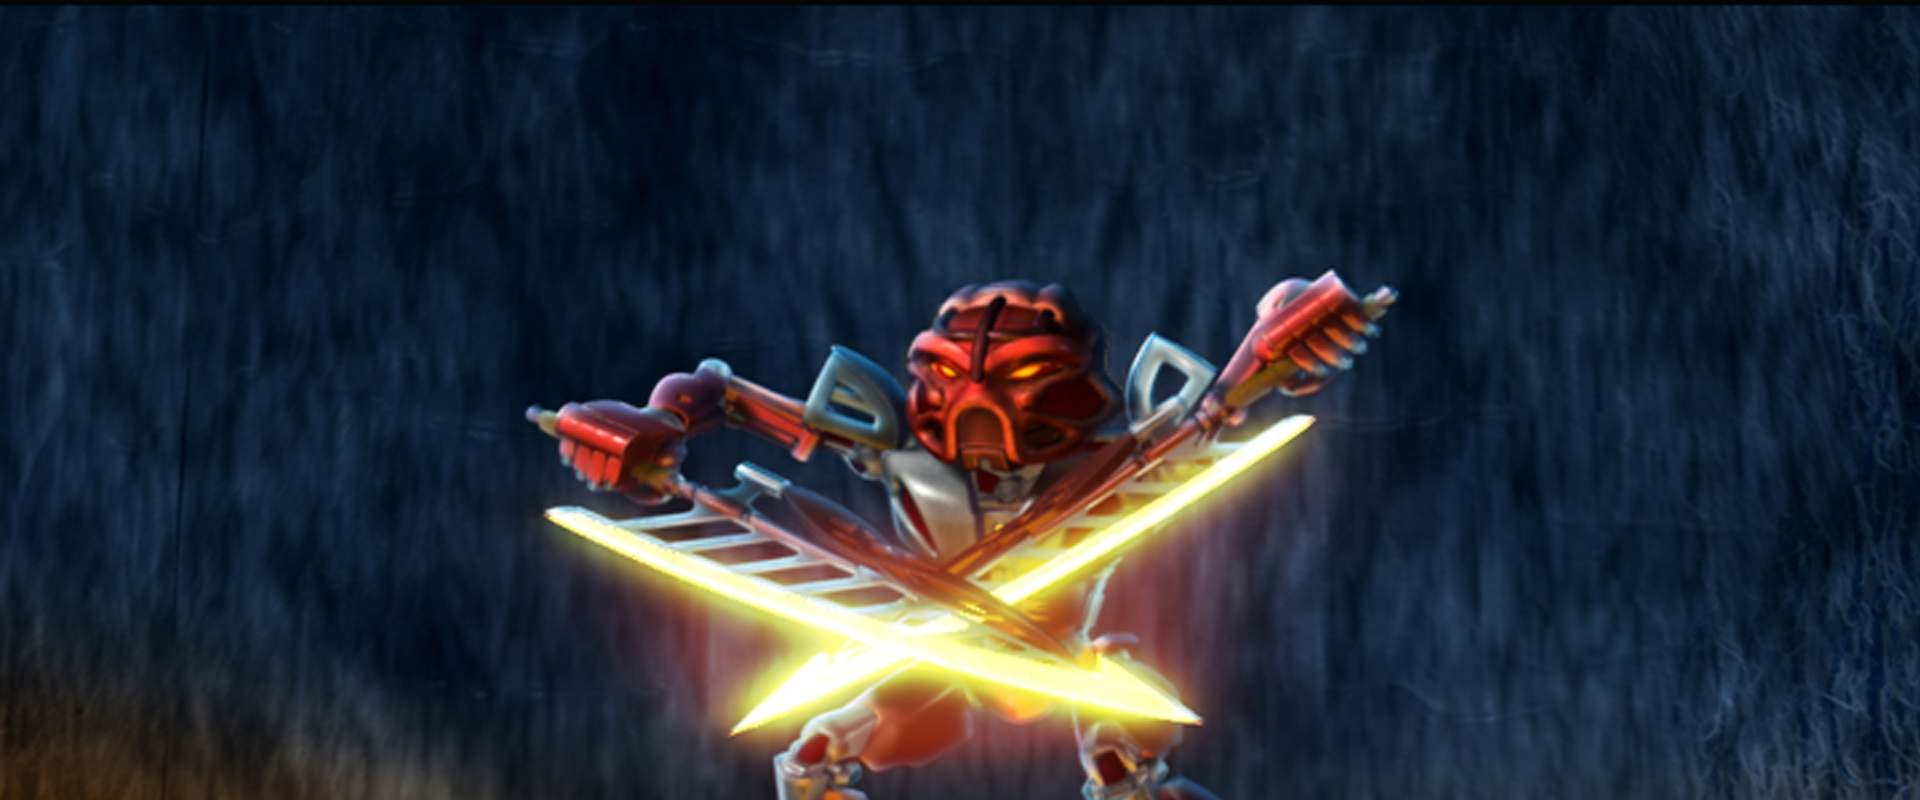 Bionicle: Mask of Light background 2